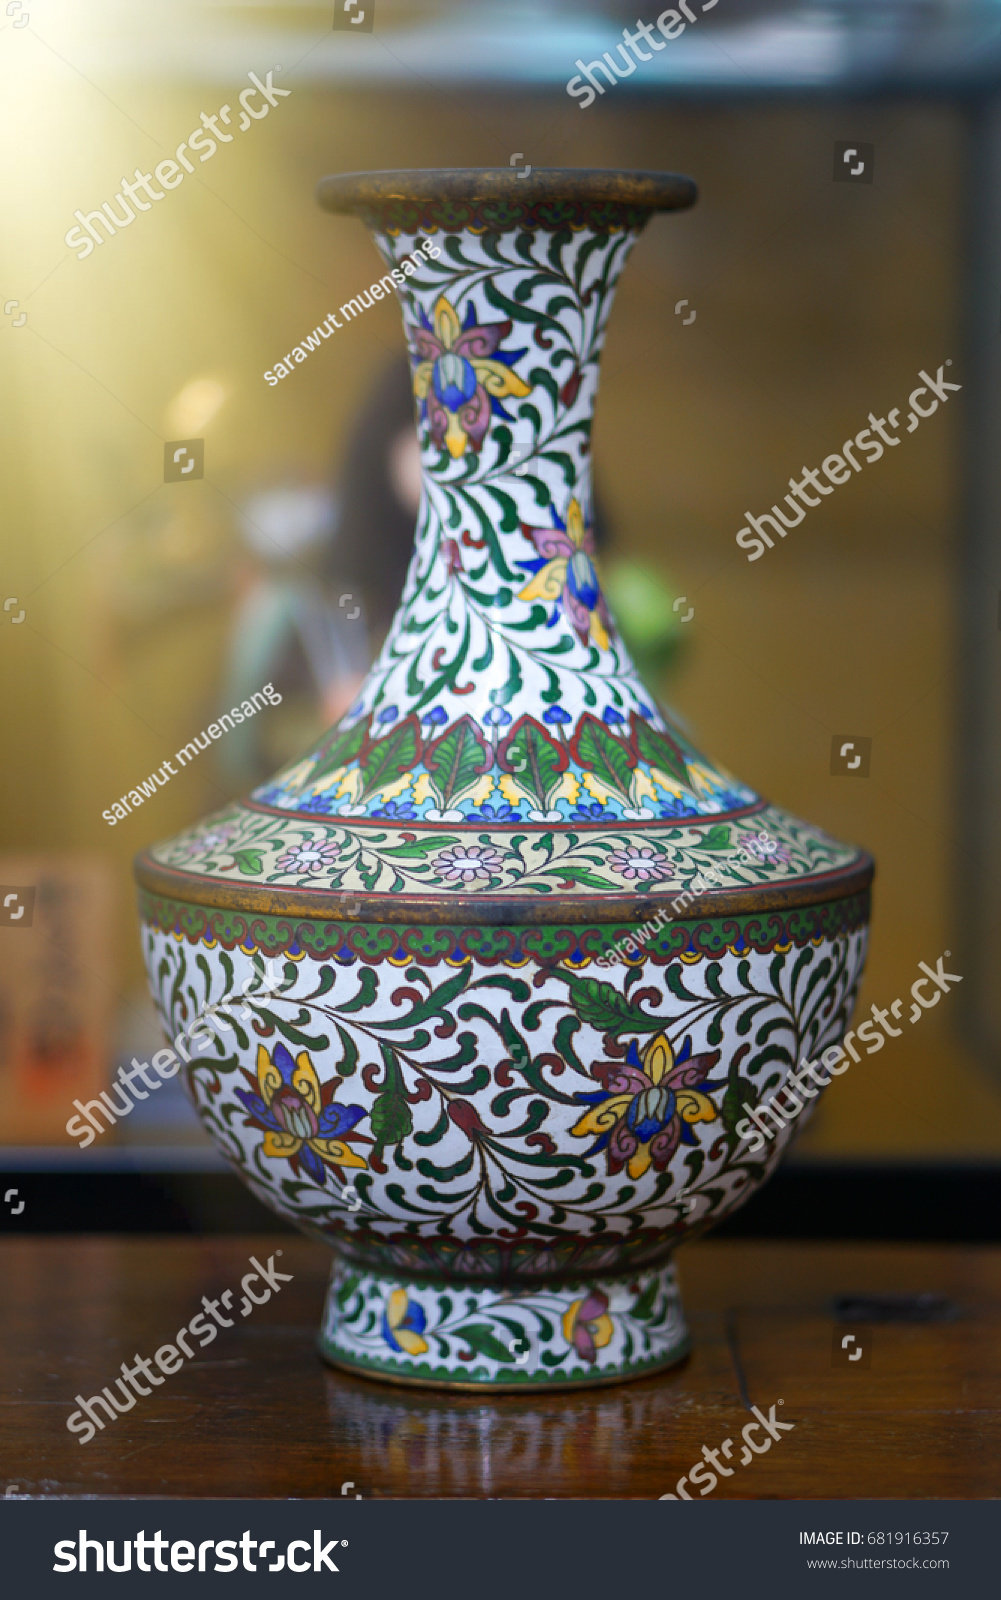 Chinese antique vase stock photo 681916357 shutterstock chinese antique vase reviewsmspy